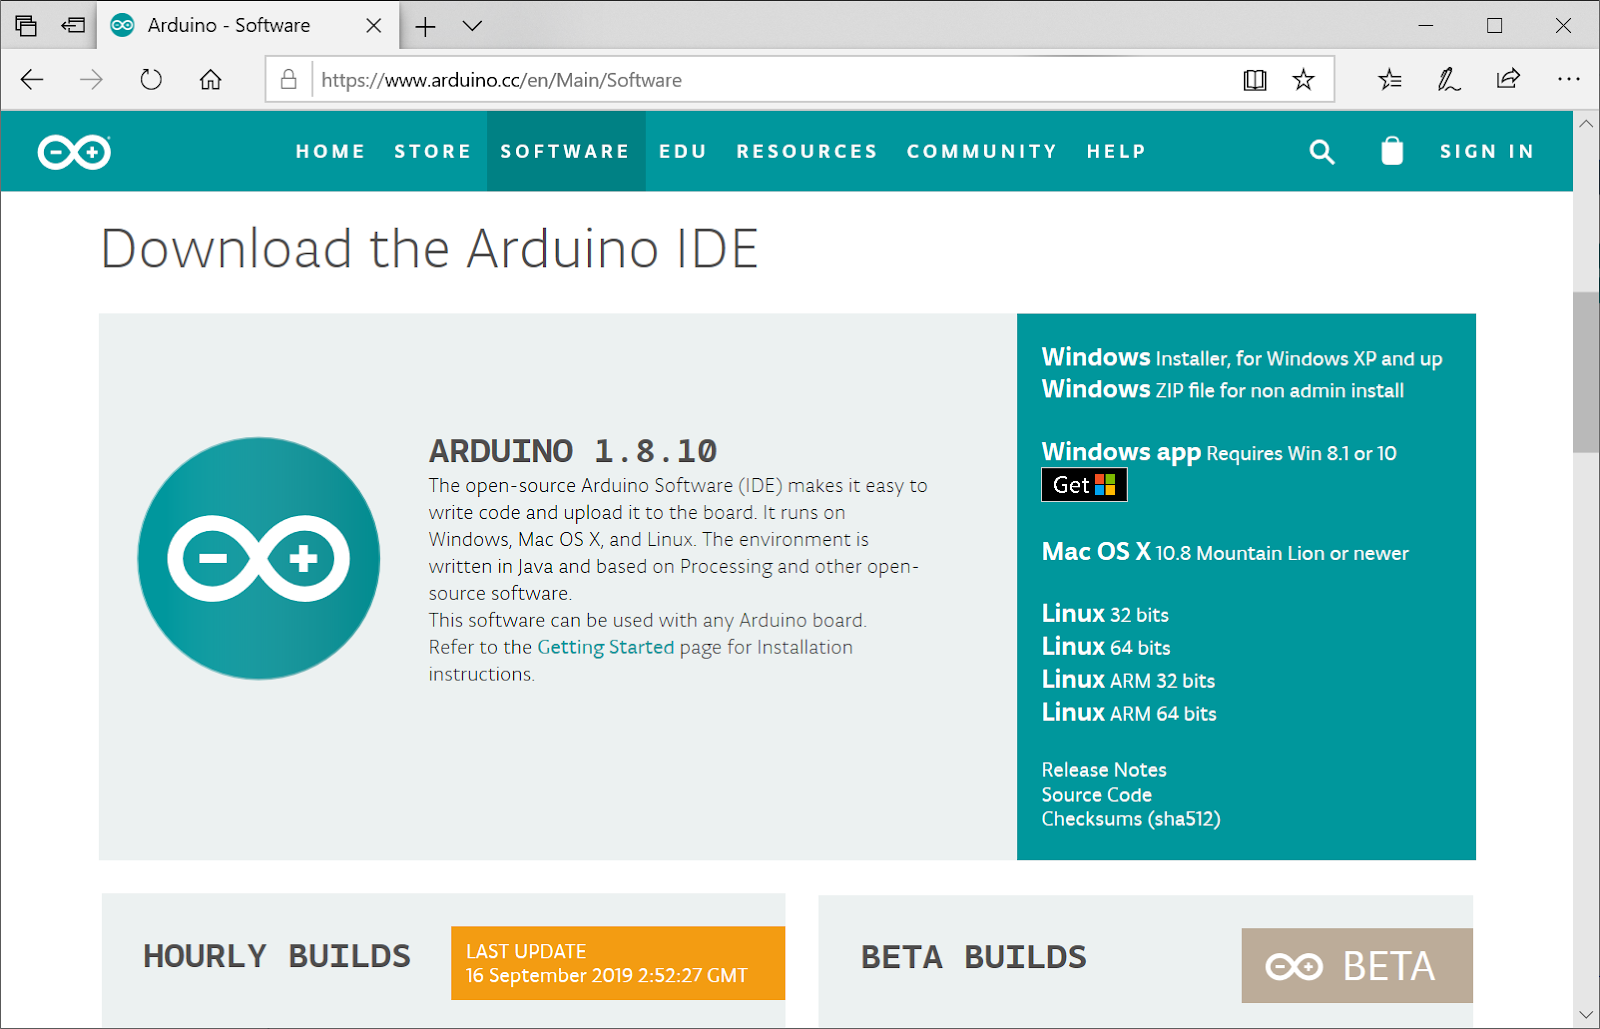 The Arduino website